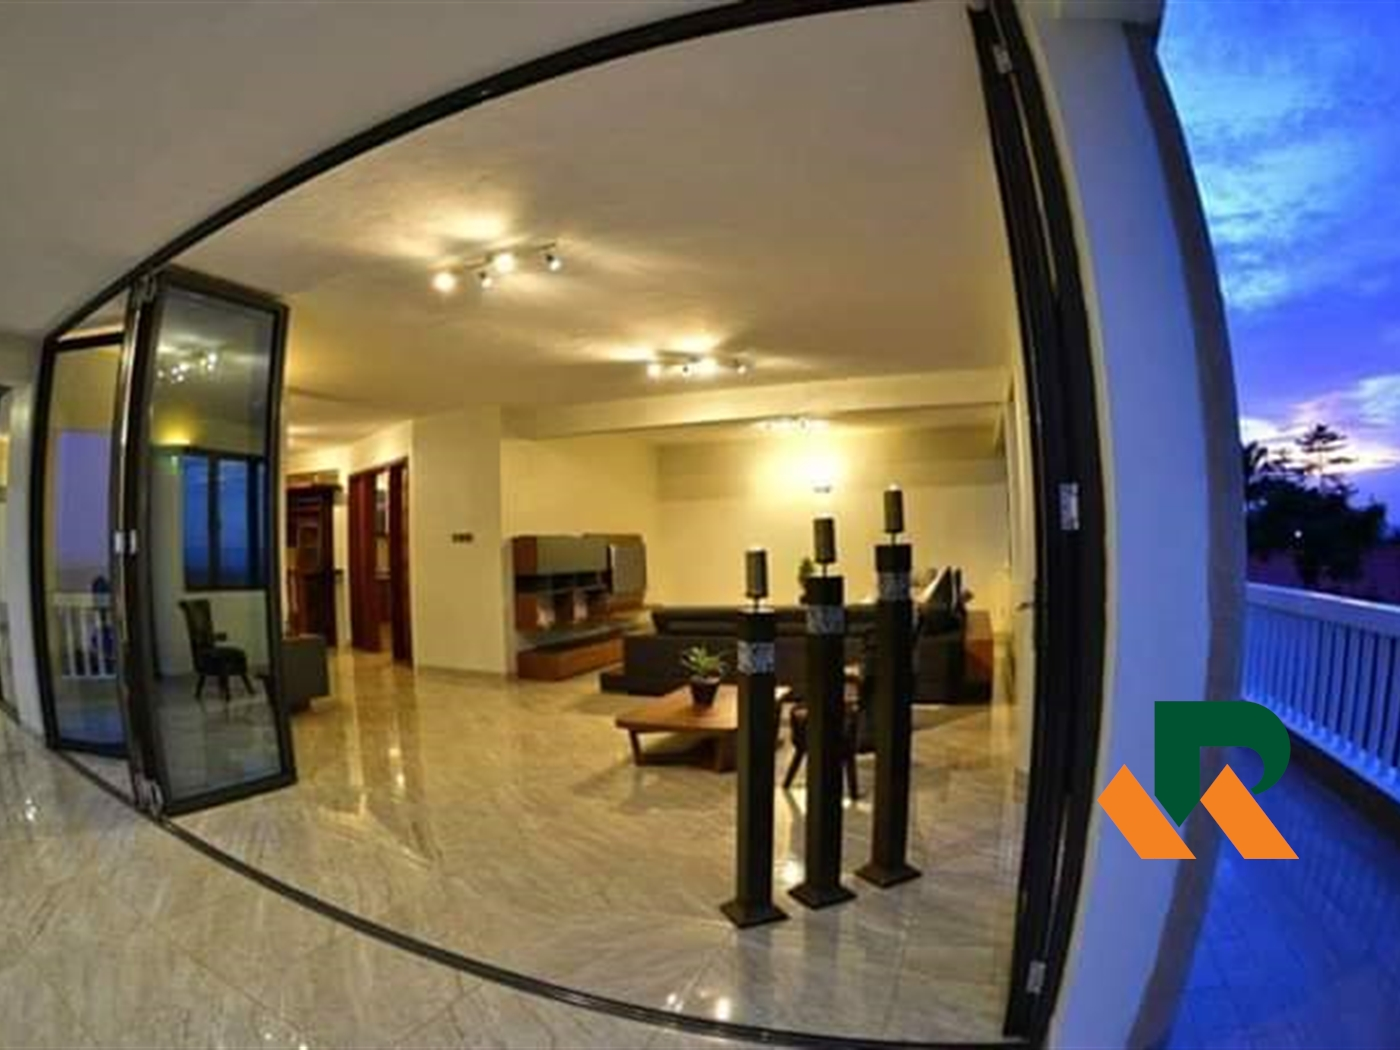 Penthouse for rent in Naguru Kampala